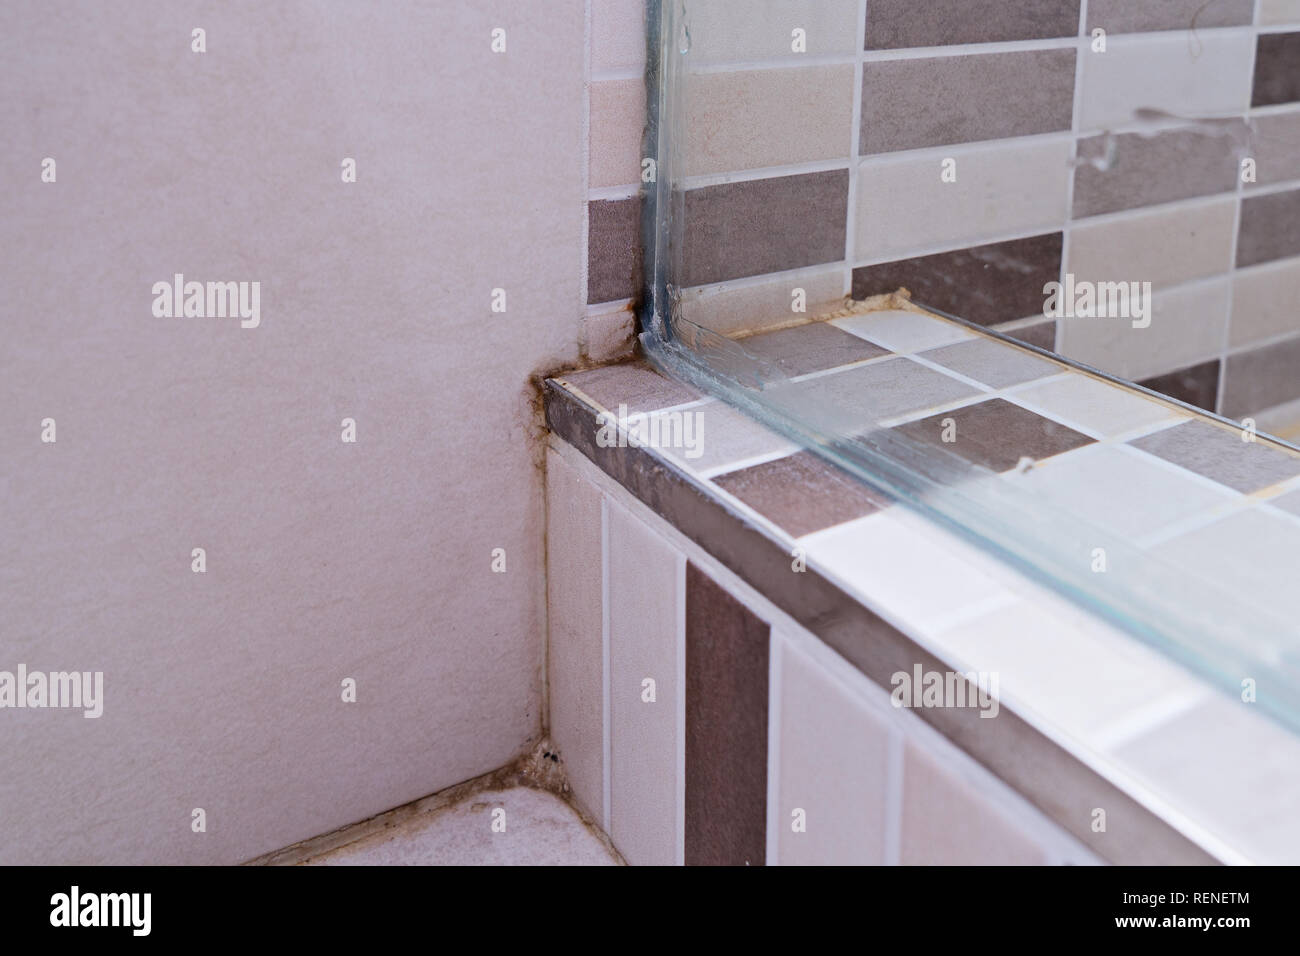 Black mold on tile in shower cabin. Poor ventilation, humidity, condensation cause fungus on the walls, close up. Unhygienic dirty mildew in bathroom  - Stock Image